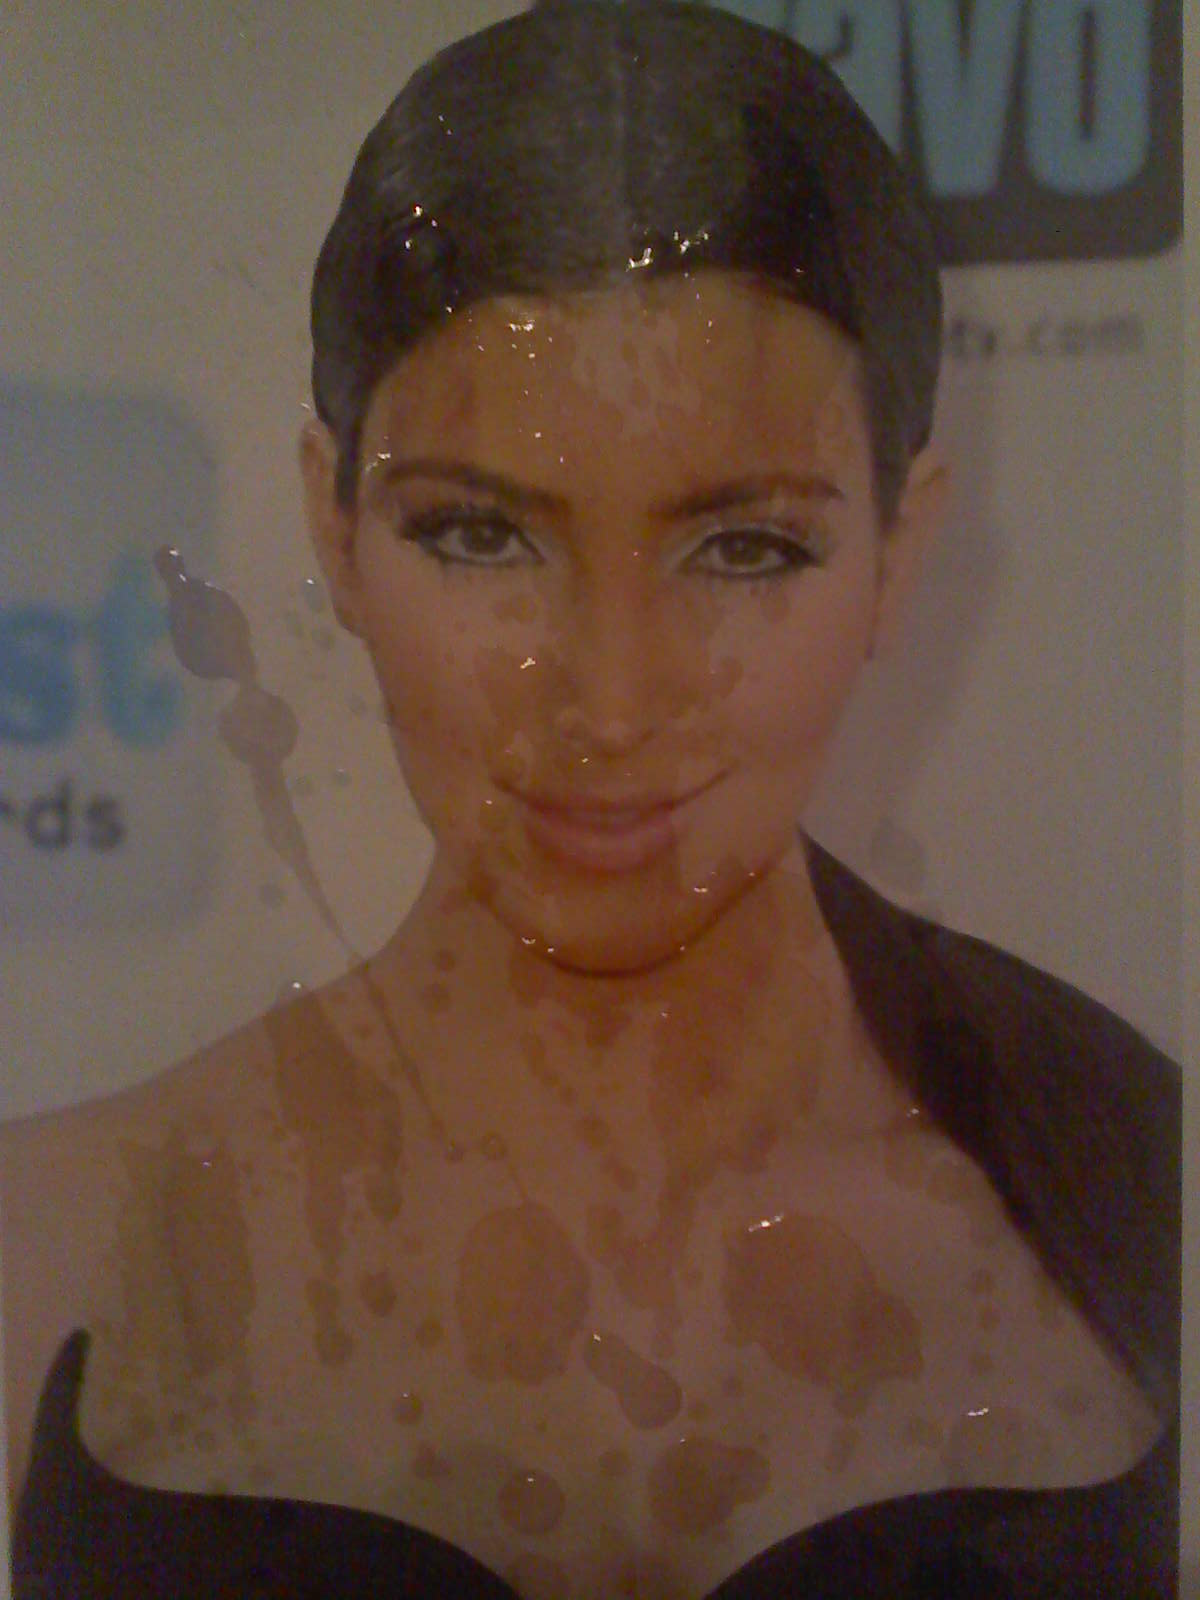 Kim Kardashian After.jpg